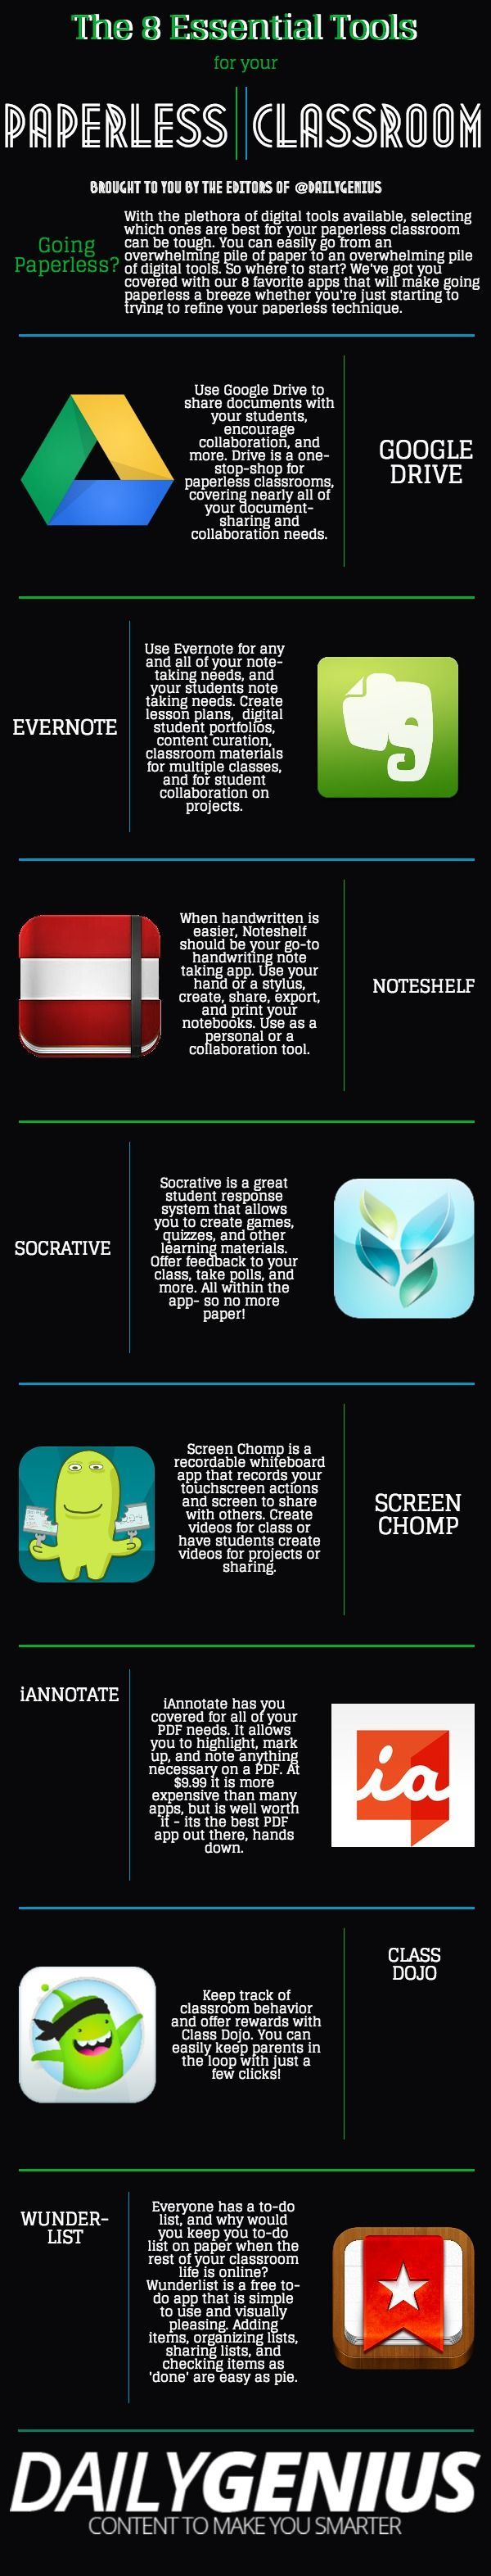 I use several of these apps, but also clearly have more I need to add to our classroom!